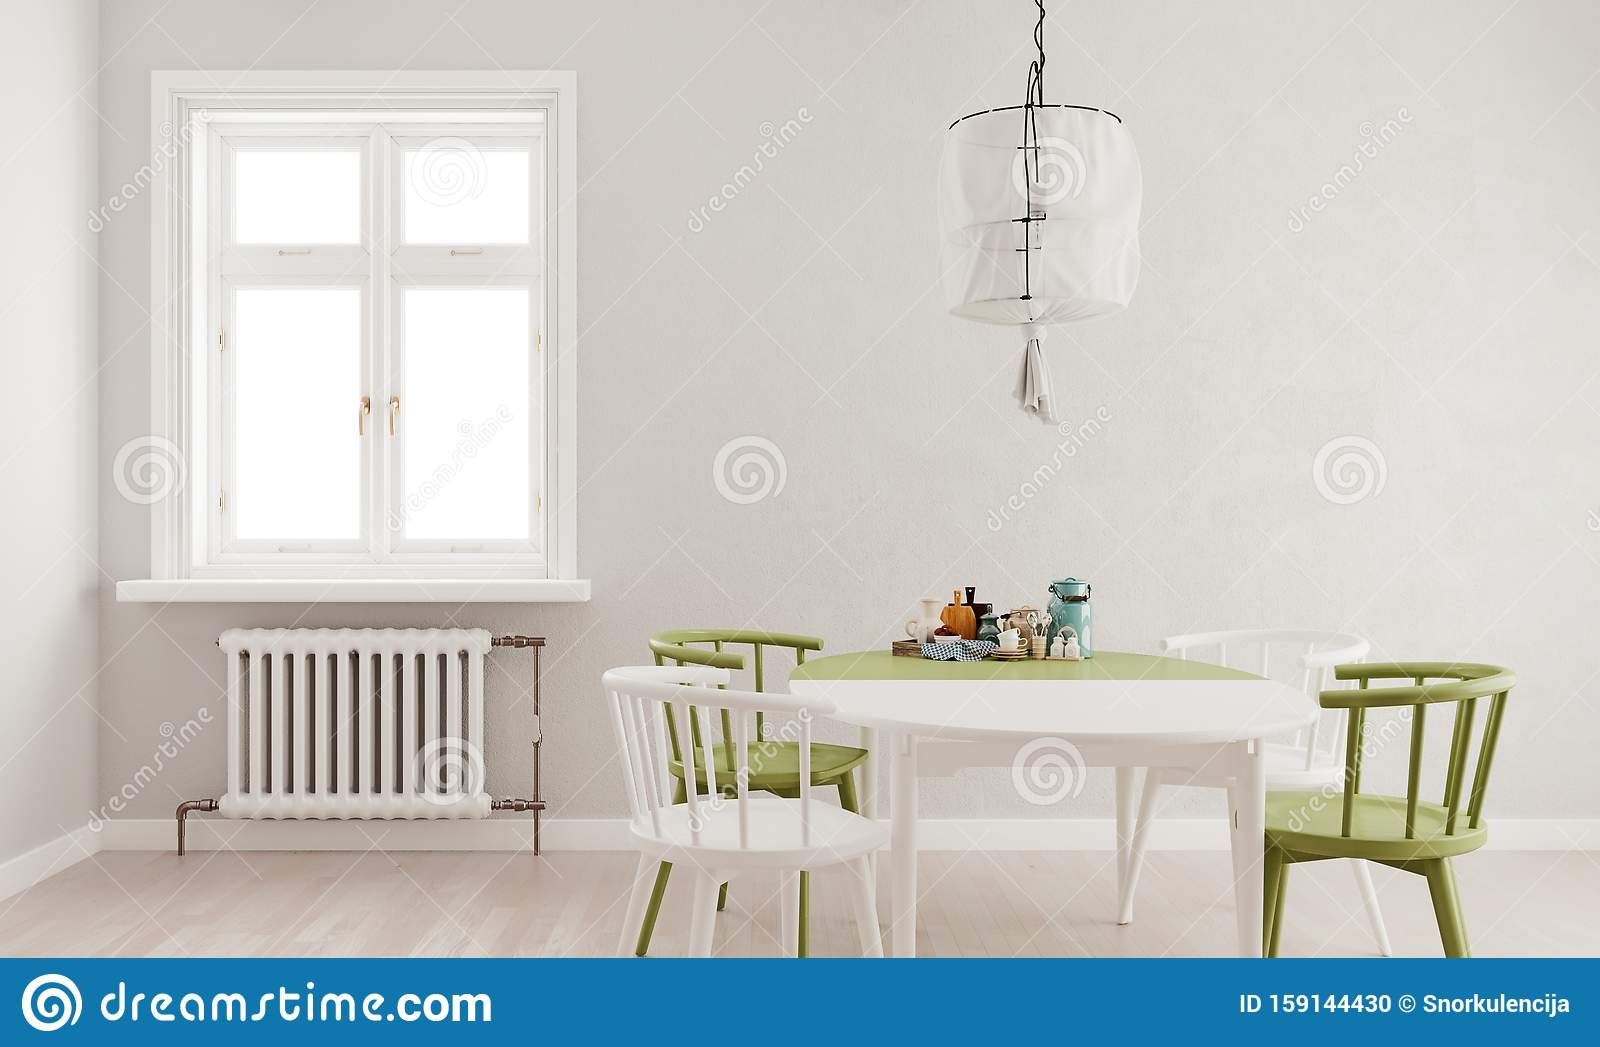 Picture of: Light Gray Mock Up Wall Green White Dining Table And Chairs With Large Window And Radiator Scandinavian Style Stock Illustration Illustration Of Indoor Apartment 159144430